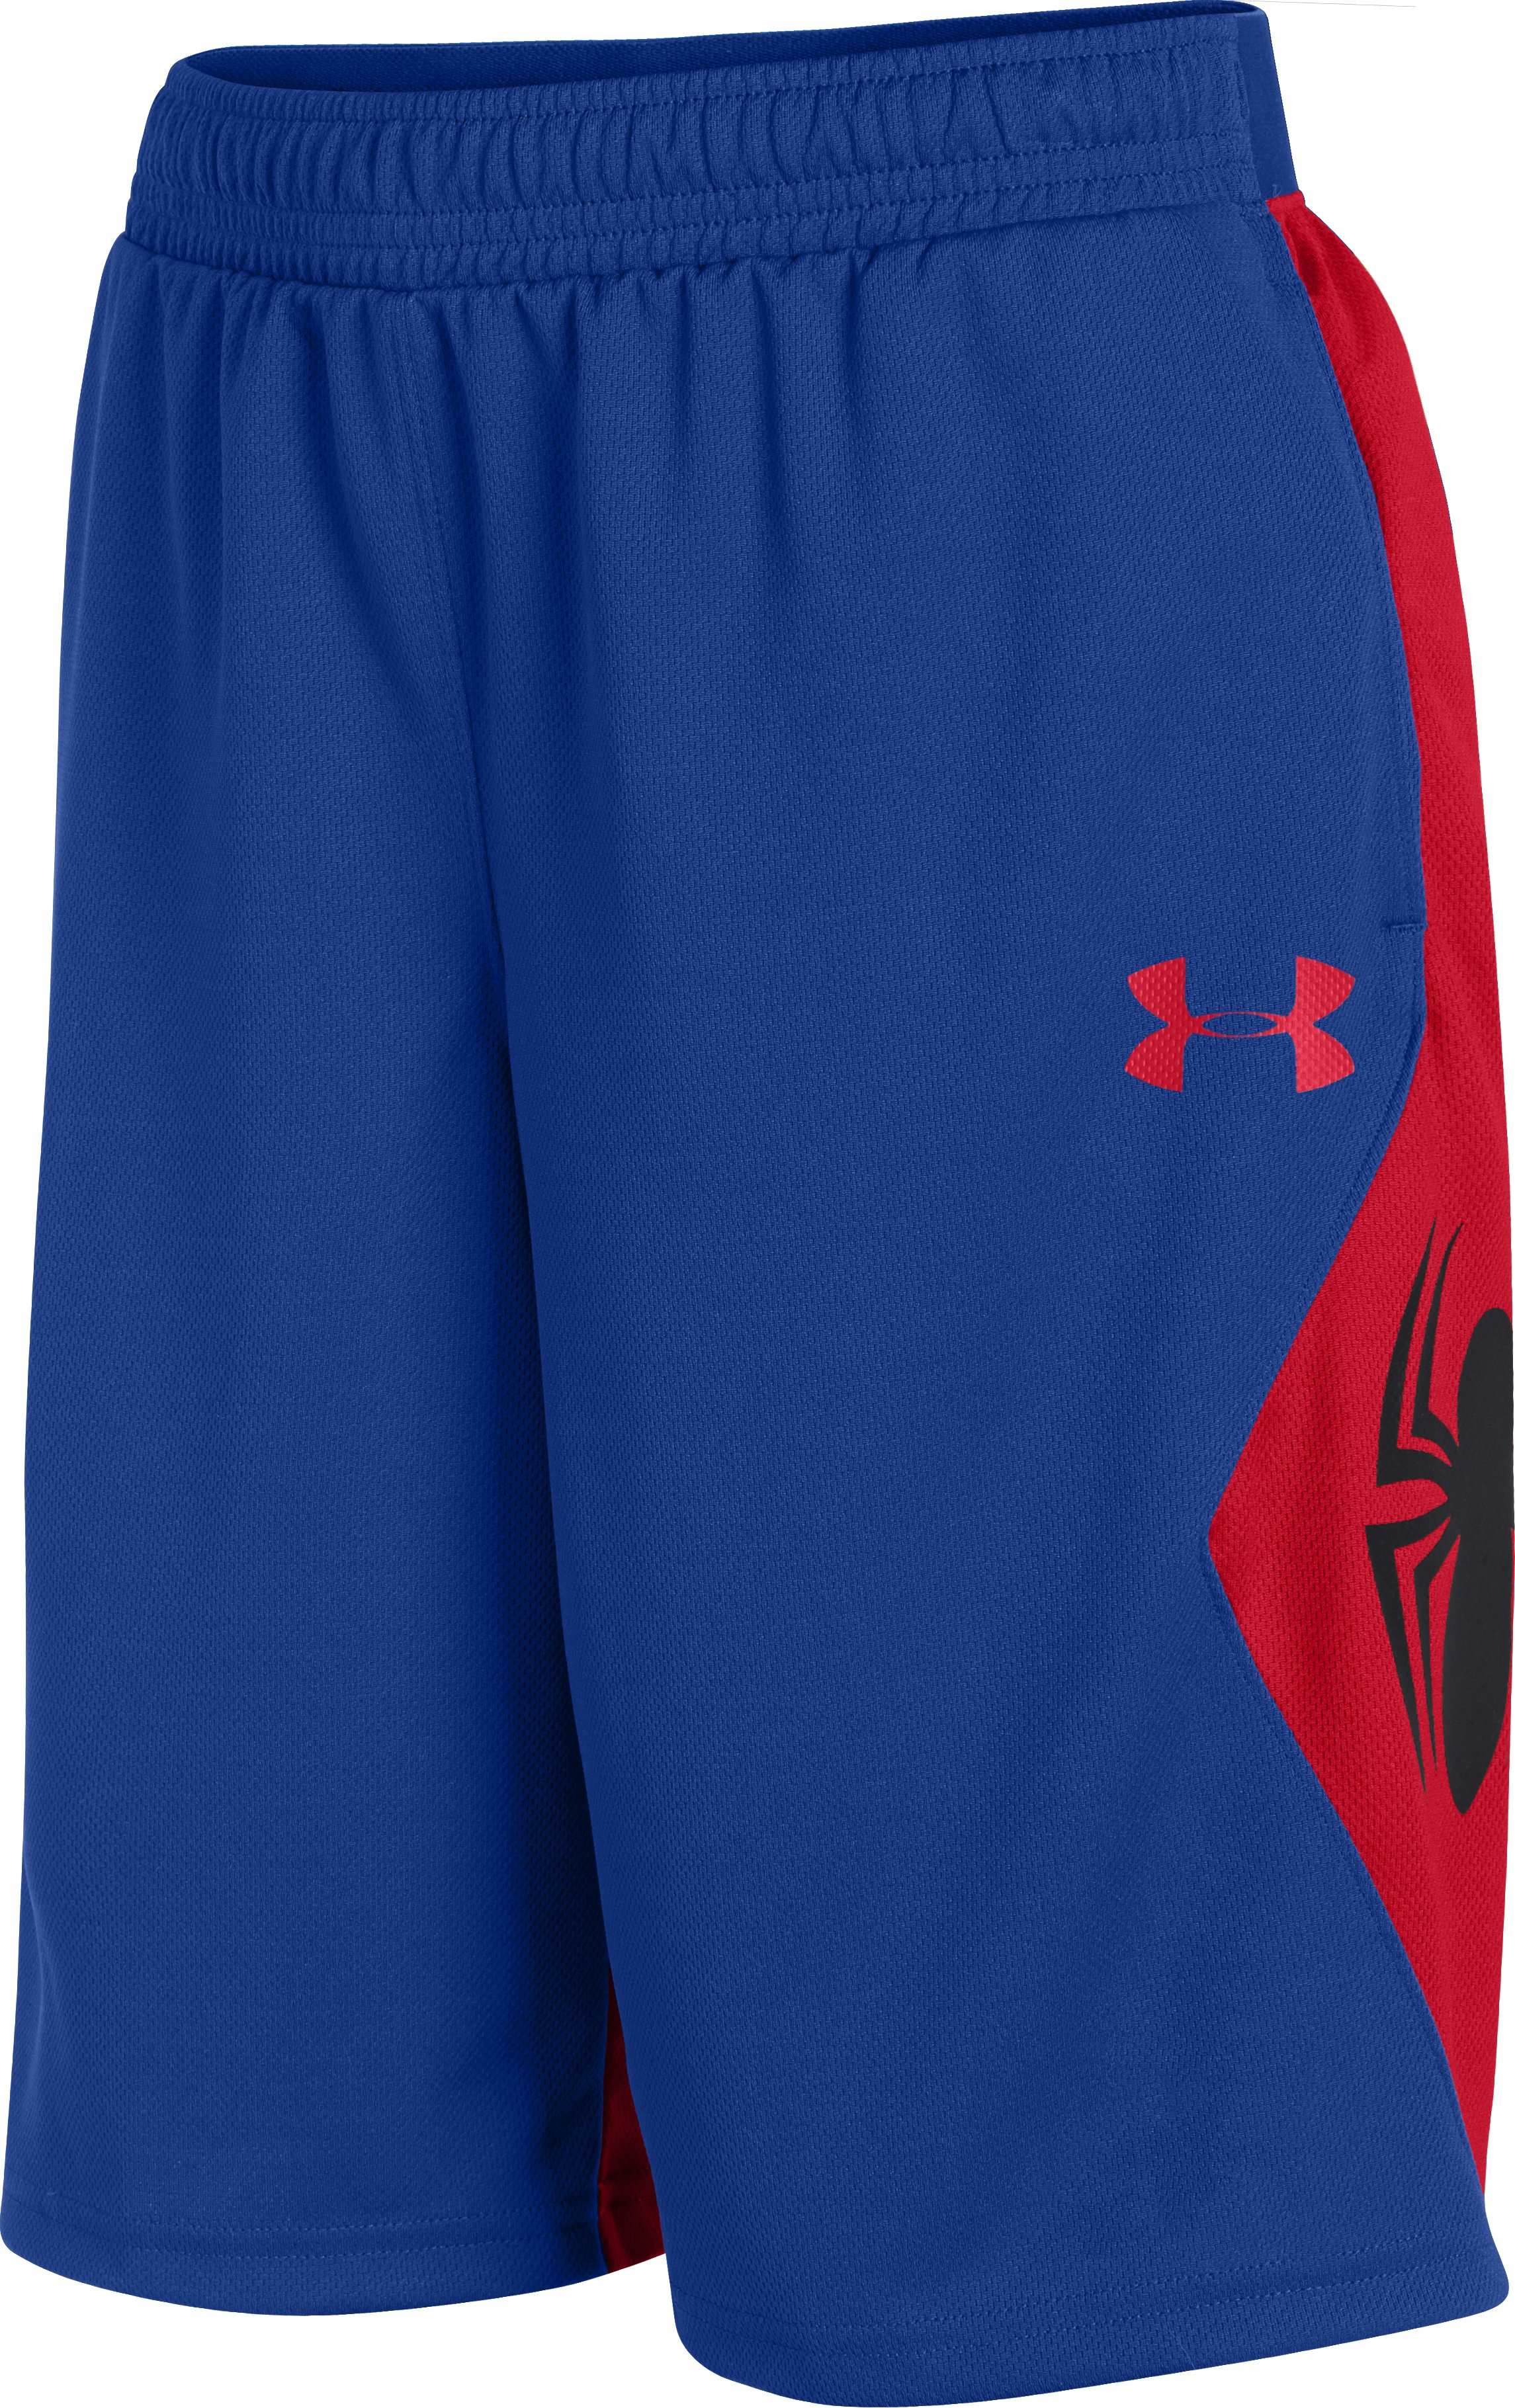 Boys' Under Armour® Hero Shorts, Royal, undefined